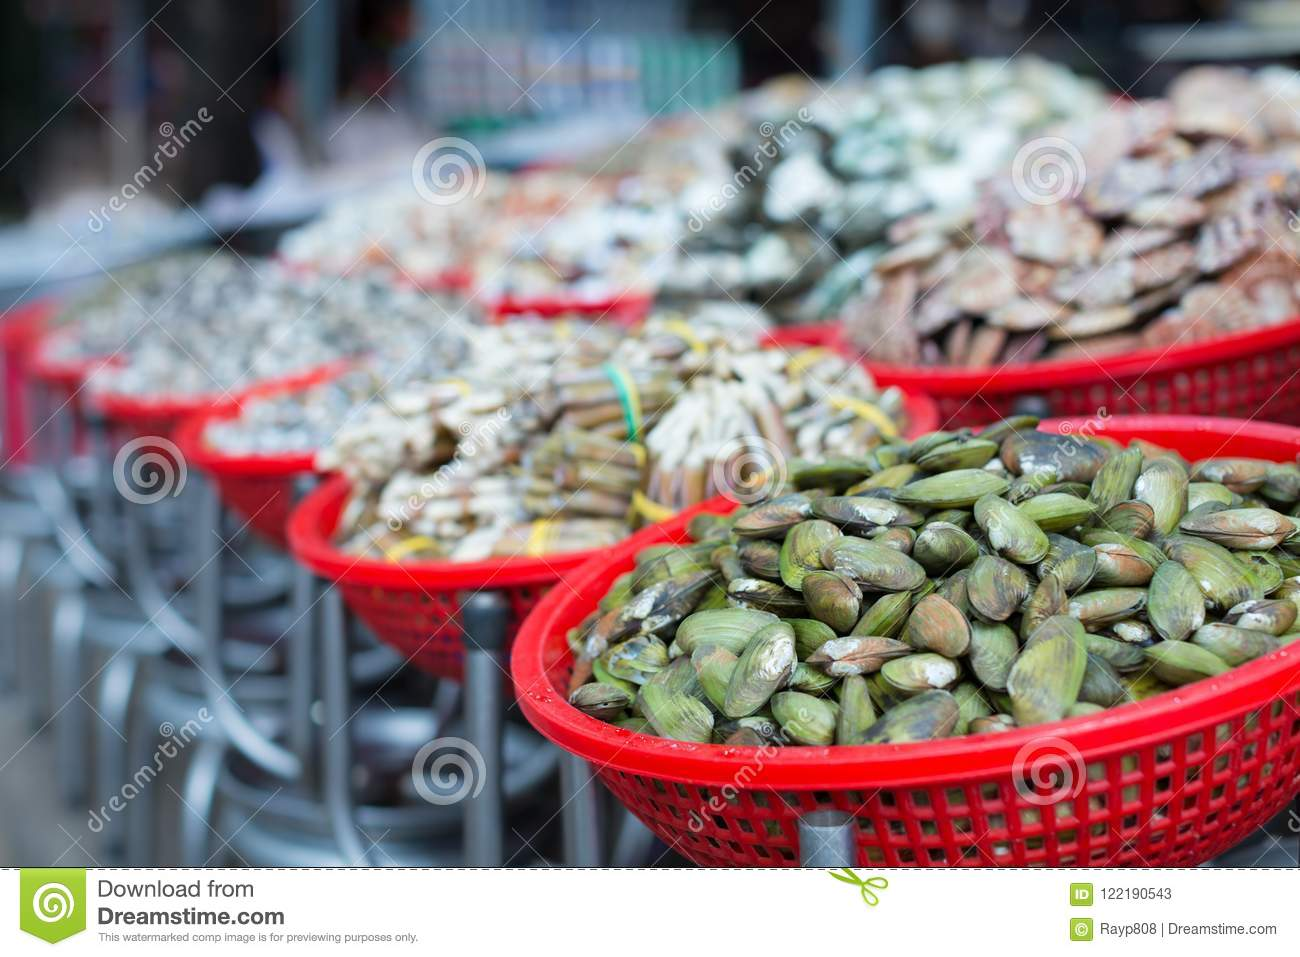 A long row of baskets full of mussels, clams, and a large assortment of shellfish